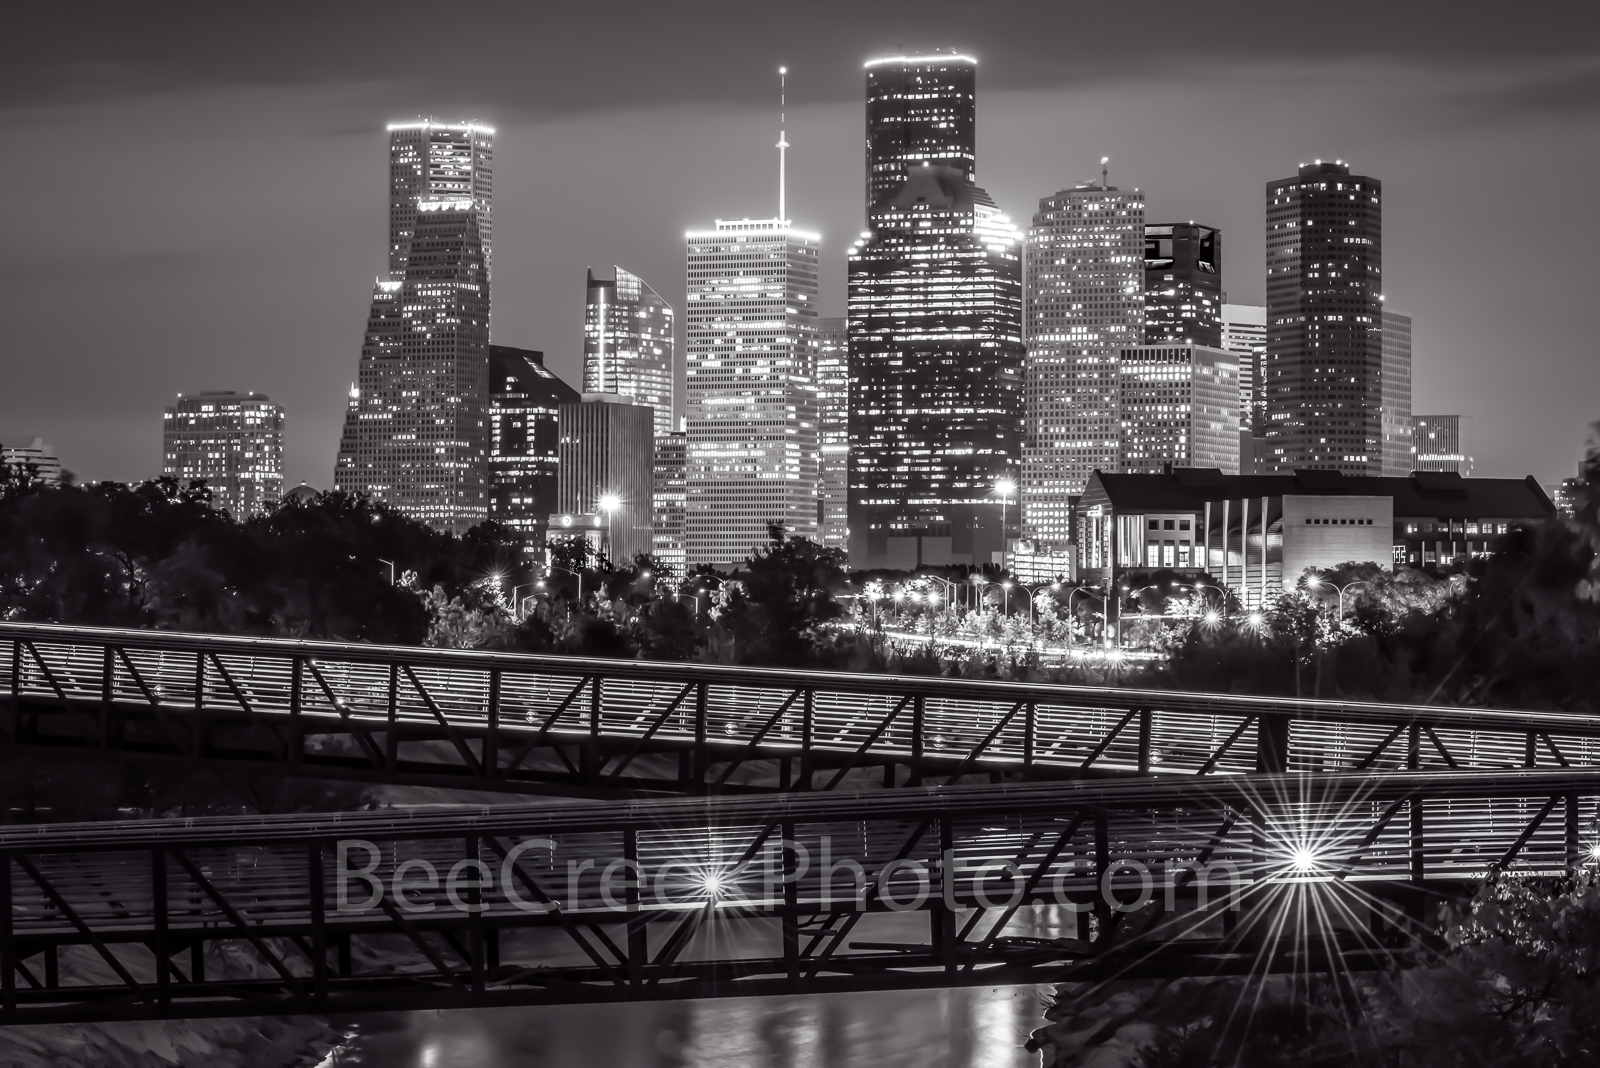 houston skyline, rosemont, pedestrian bridge, buffalo bayou, black and white, BW, downtown,night, city, parks, cultural events, theater district, sports, music, events, performing arts, art groups, op, photo